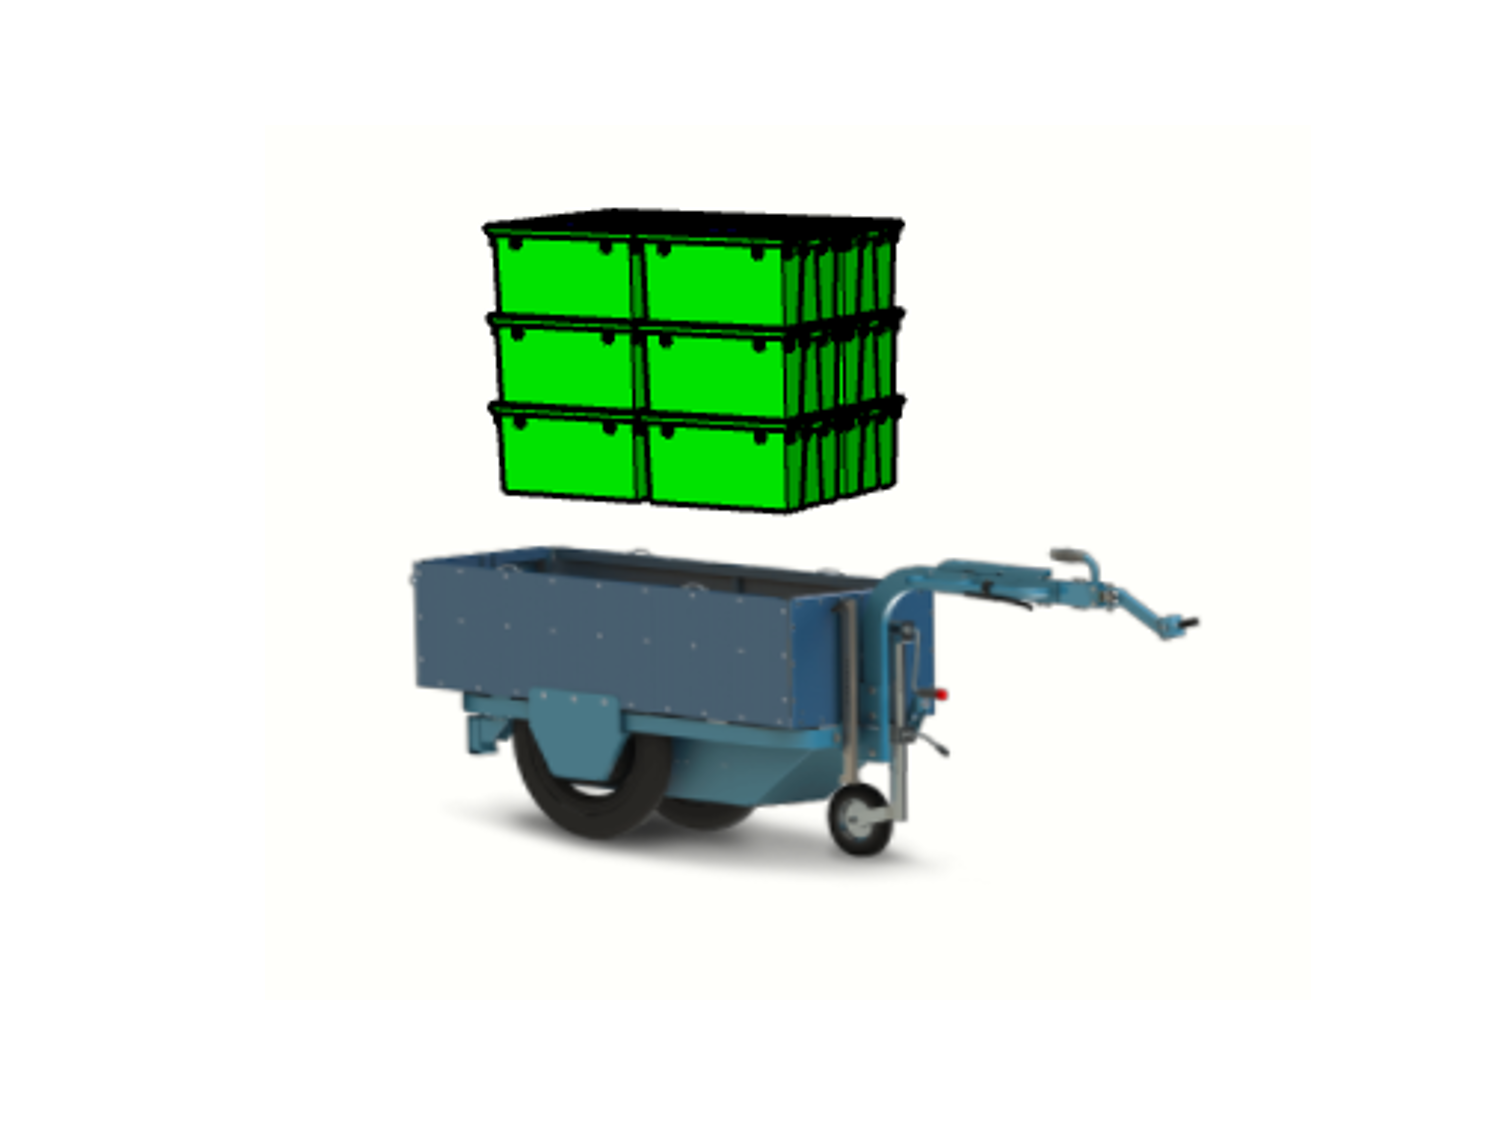 K-Ryole trailer bike can hold 4 crocodile crates on the floor. Remember to insulate your boxes by adding an insulating cotton insert from COLD & CO to transport fresh goods.